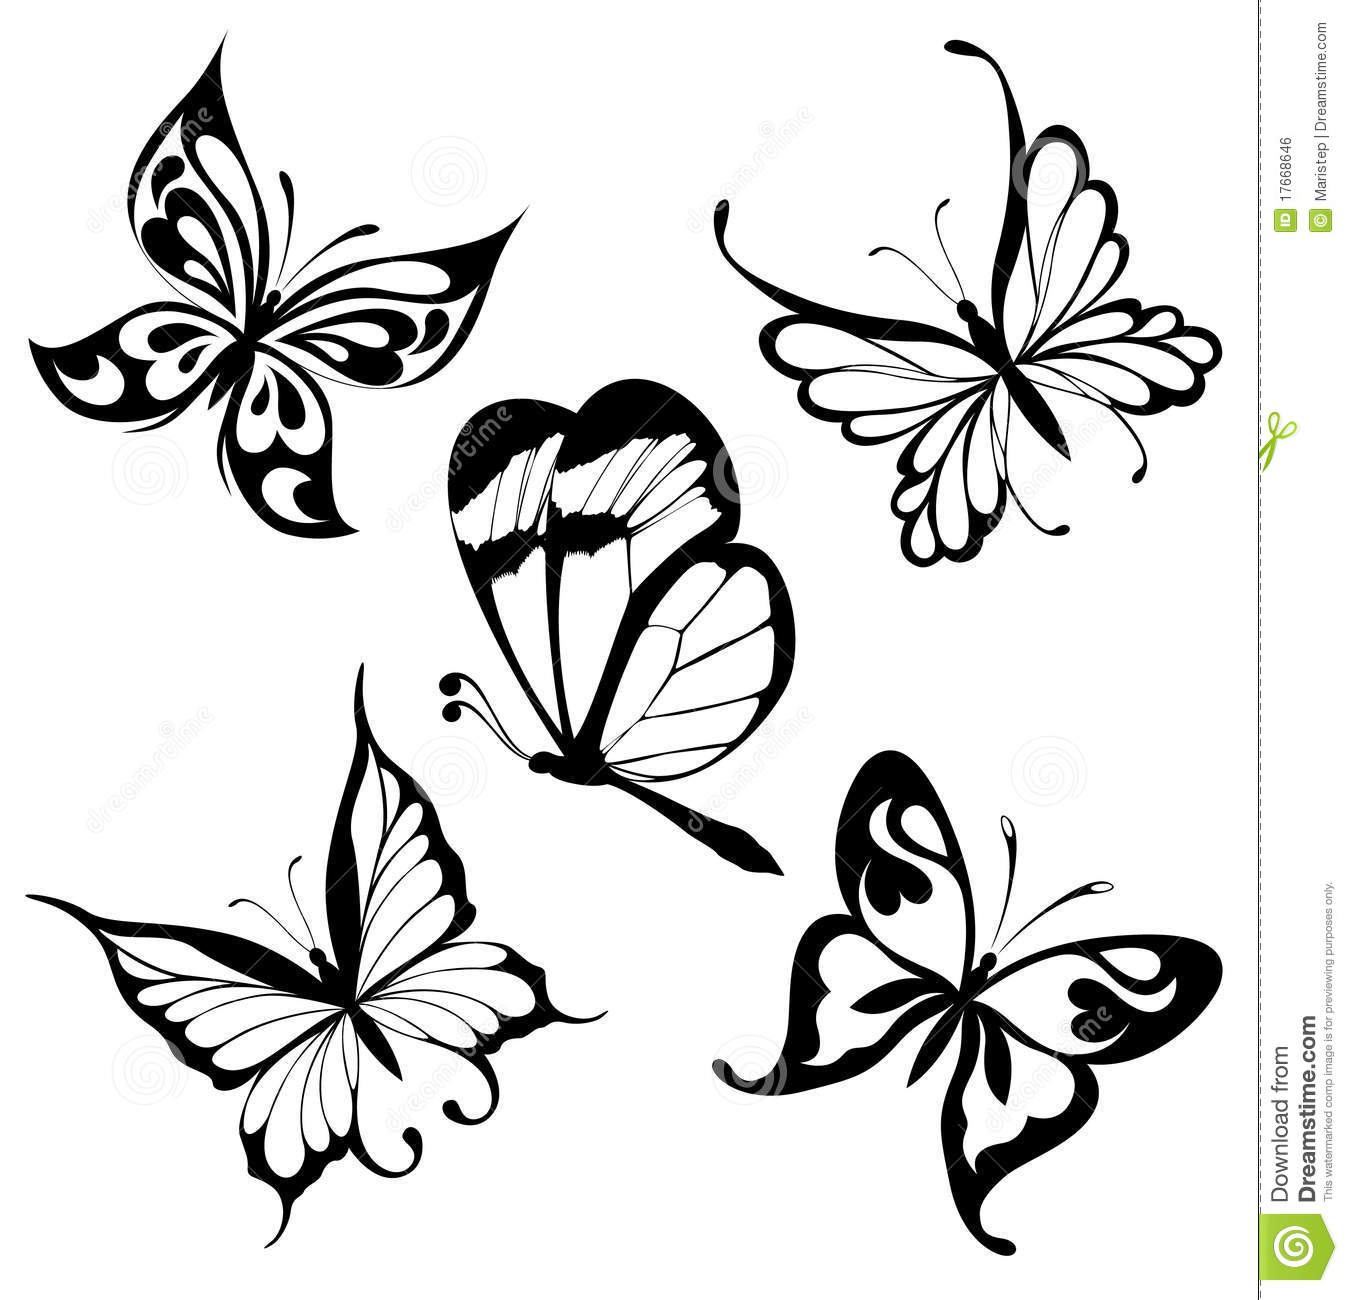 d8316e1e734f3 Black a white set of butterflies of tattoos. Designers Also Selected These Stock  Illustrations